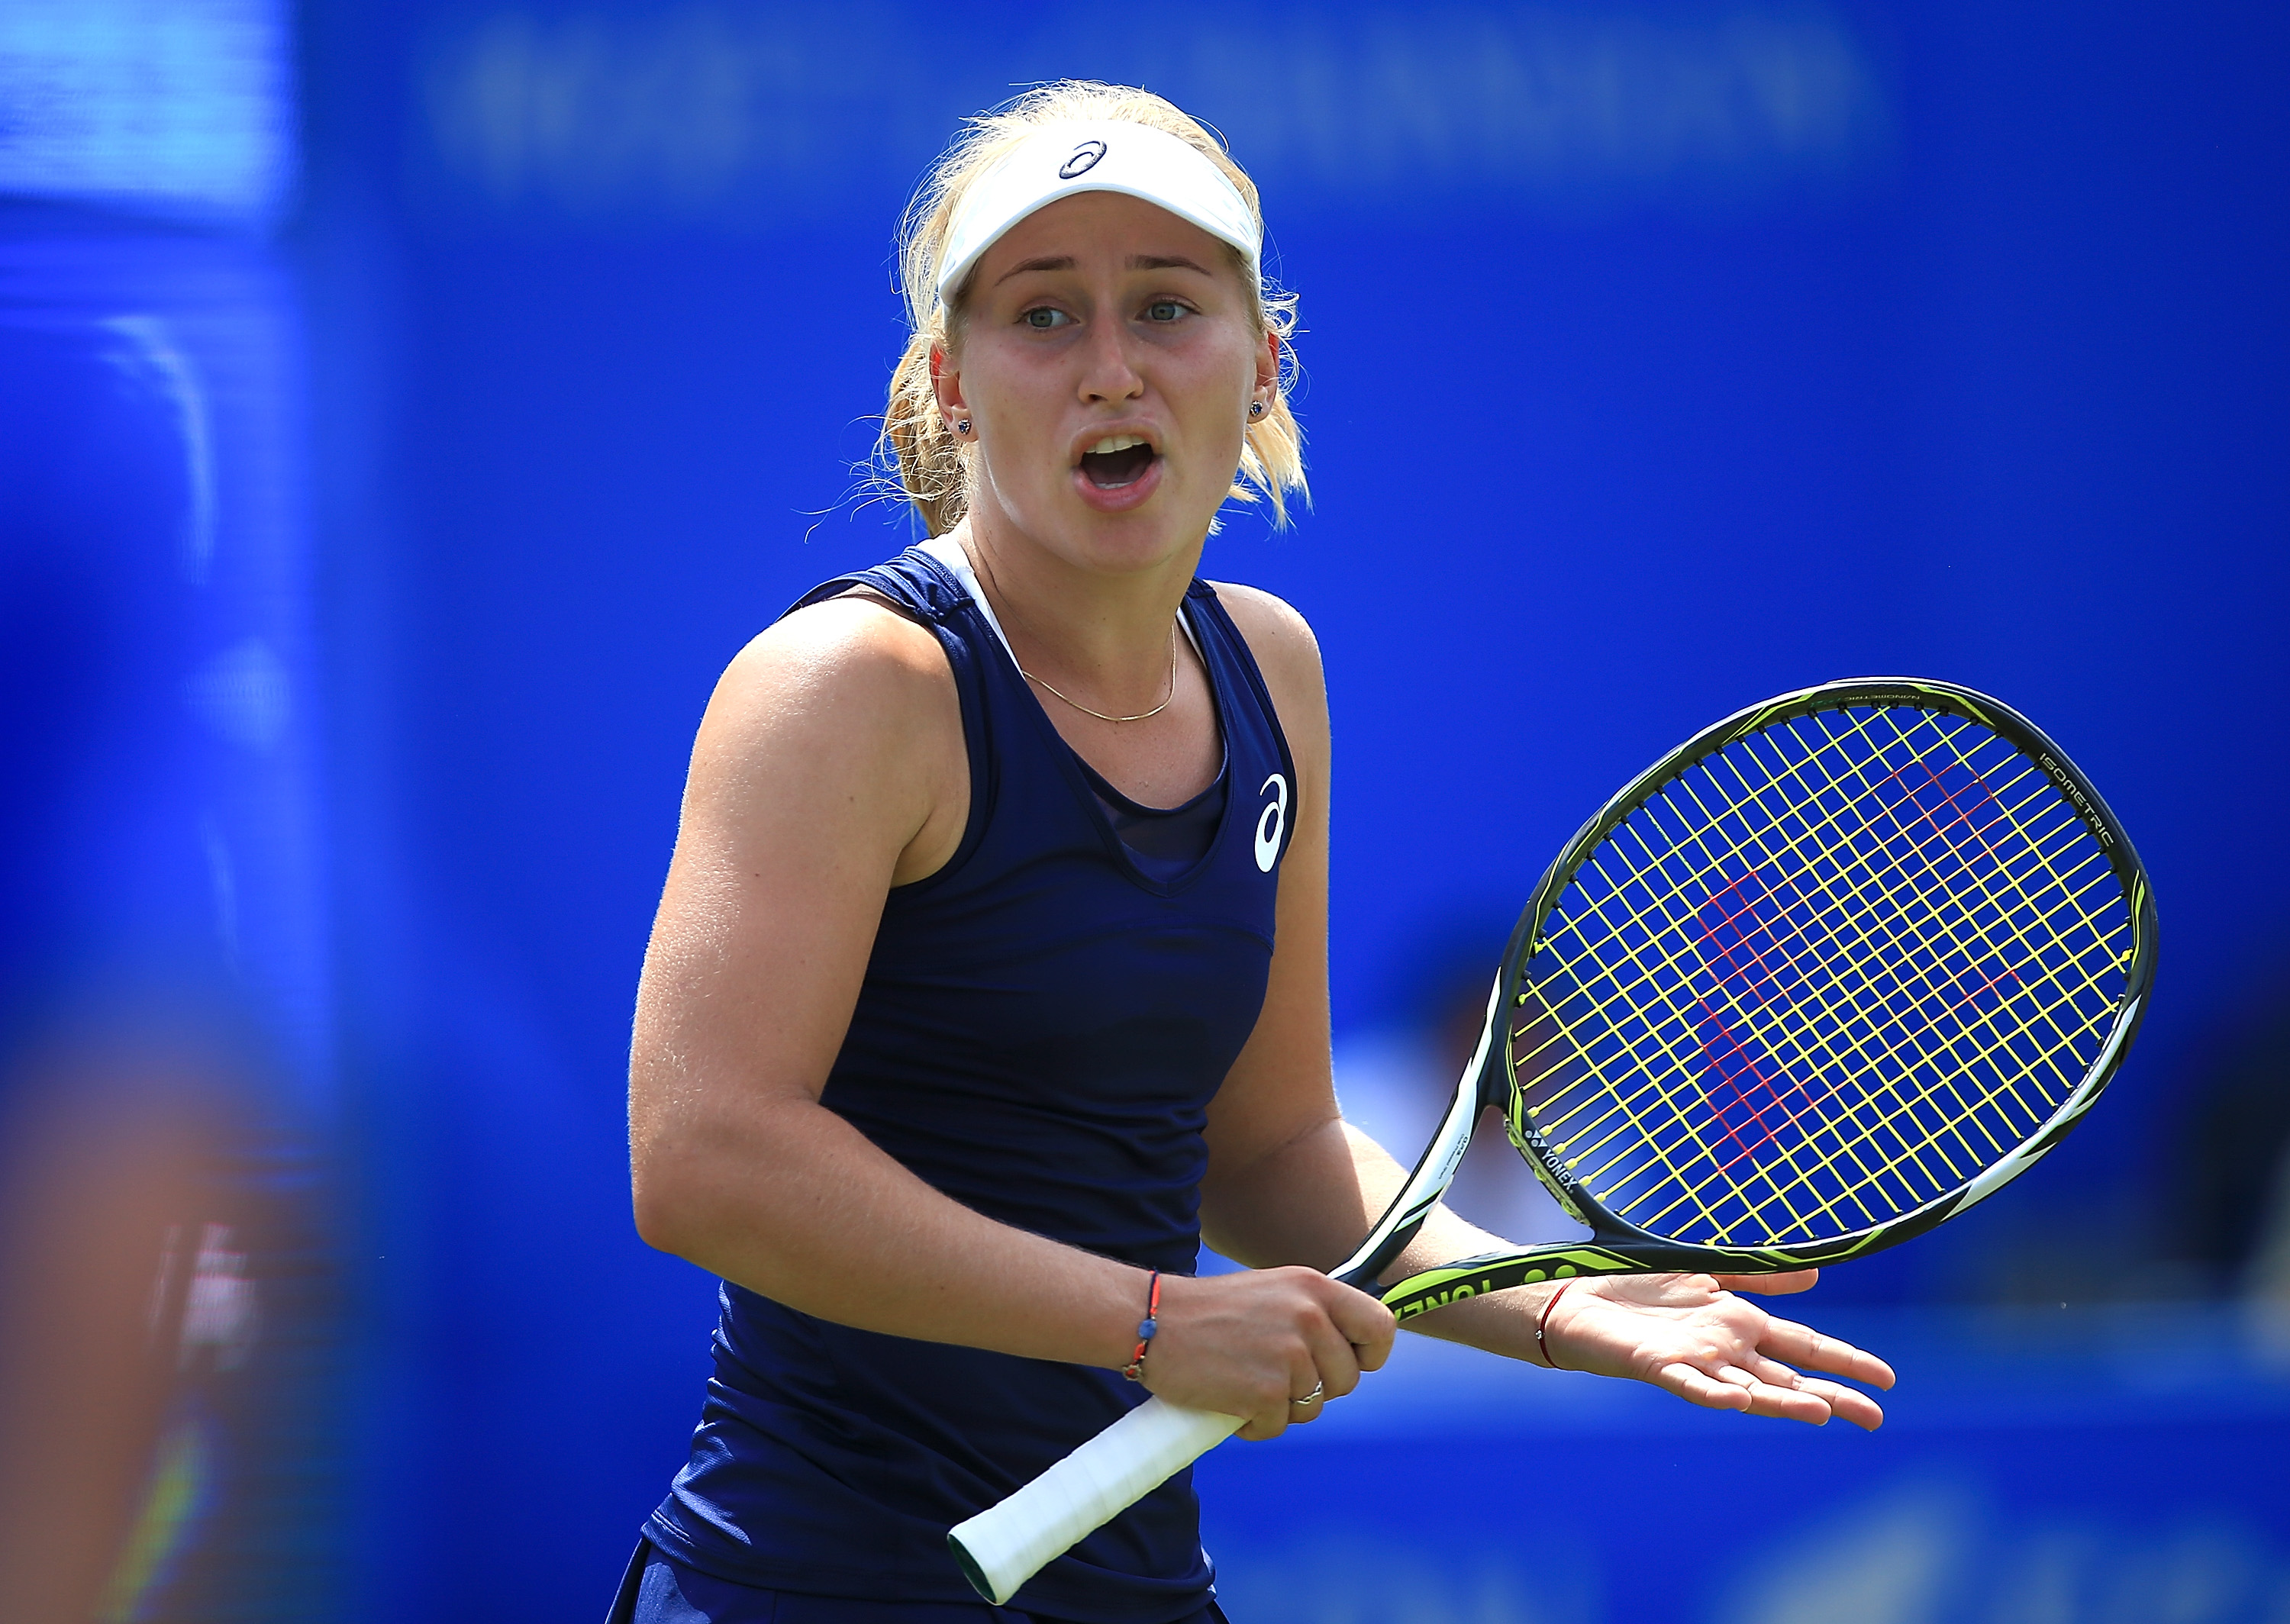 Kvitova reaches first final since attack